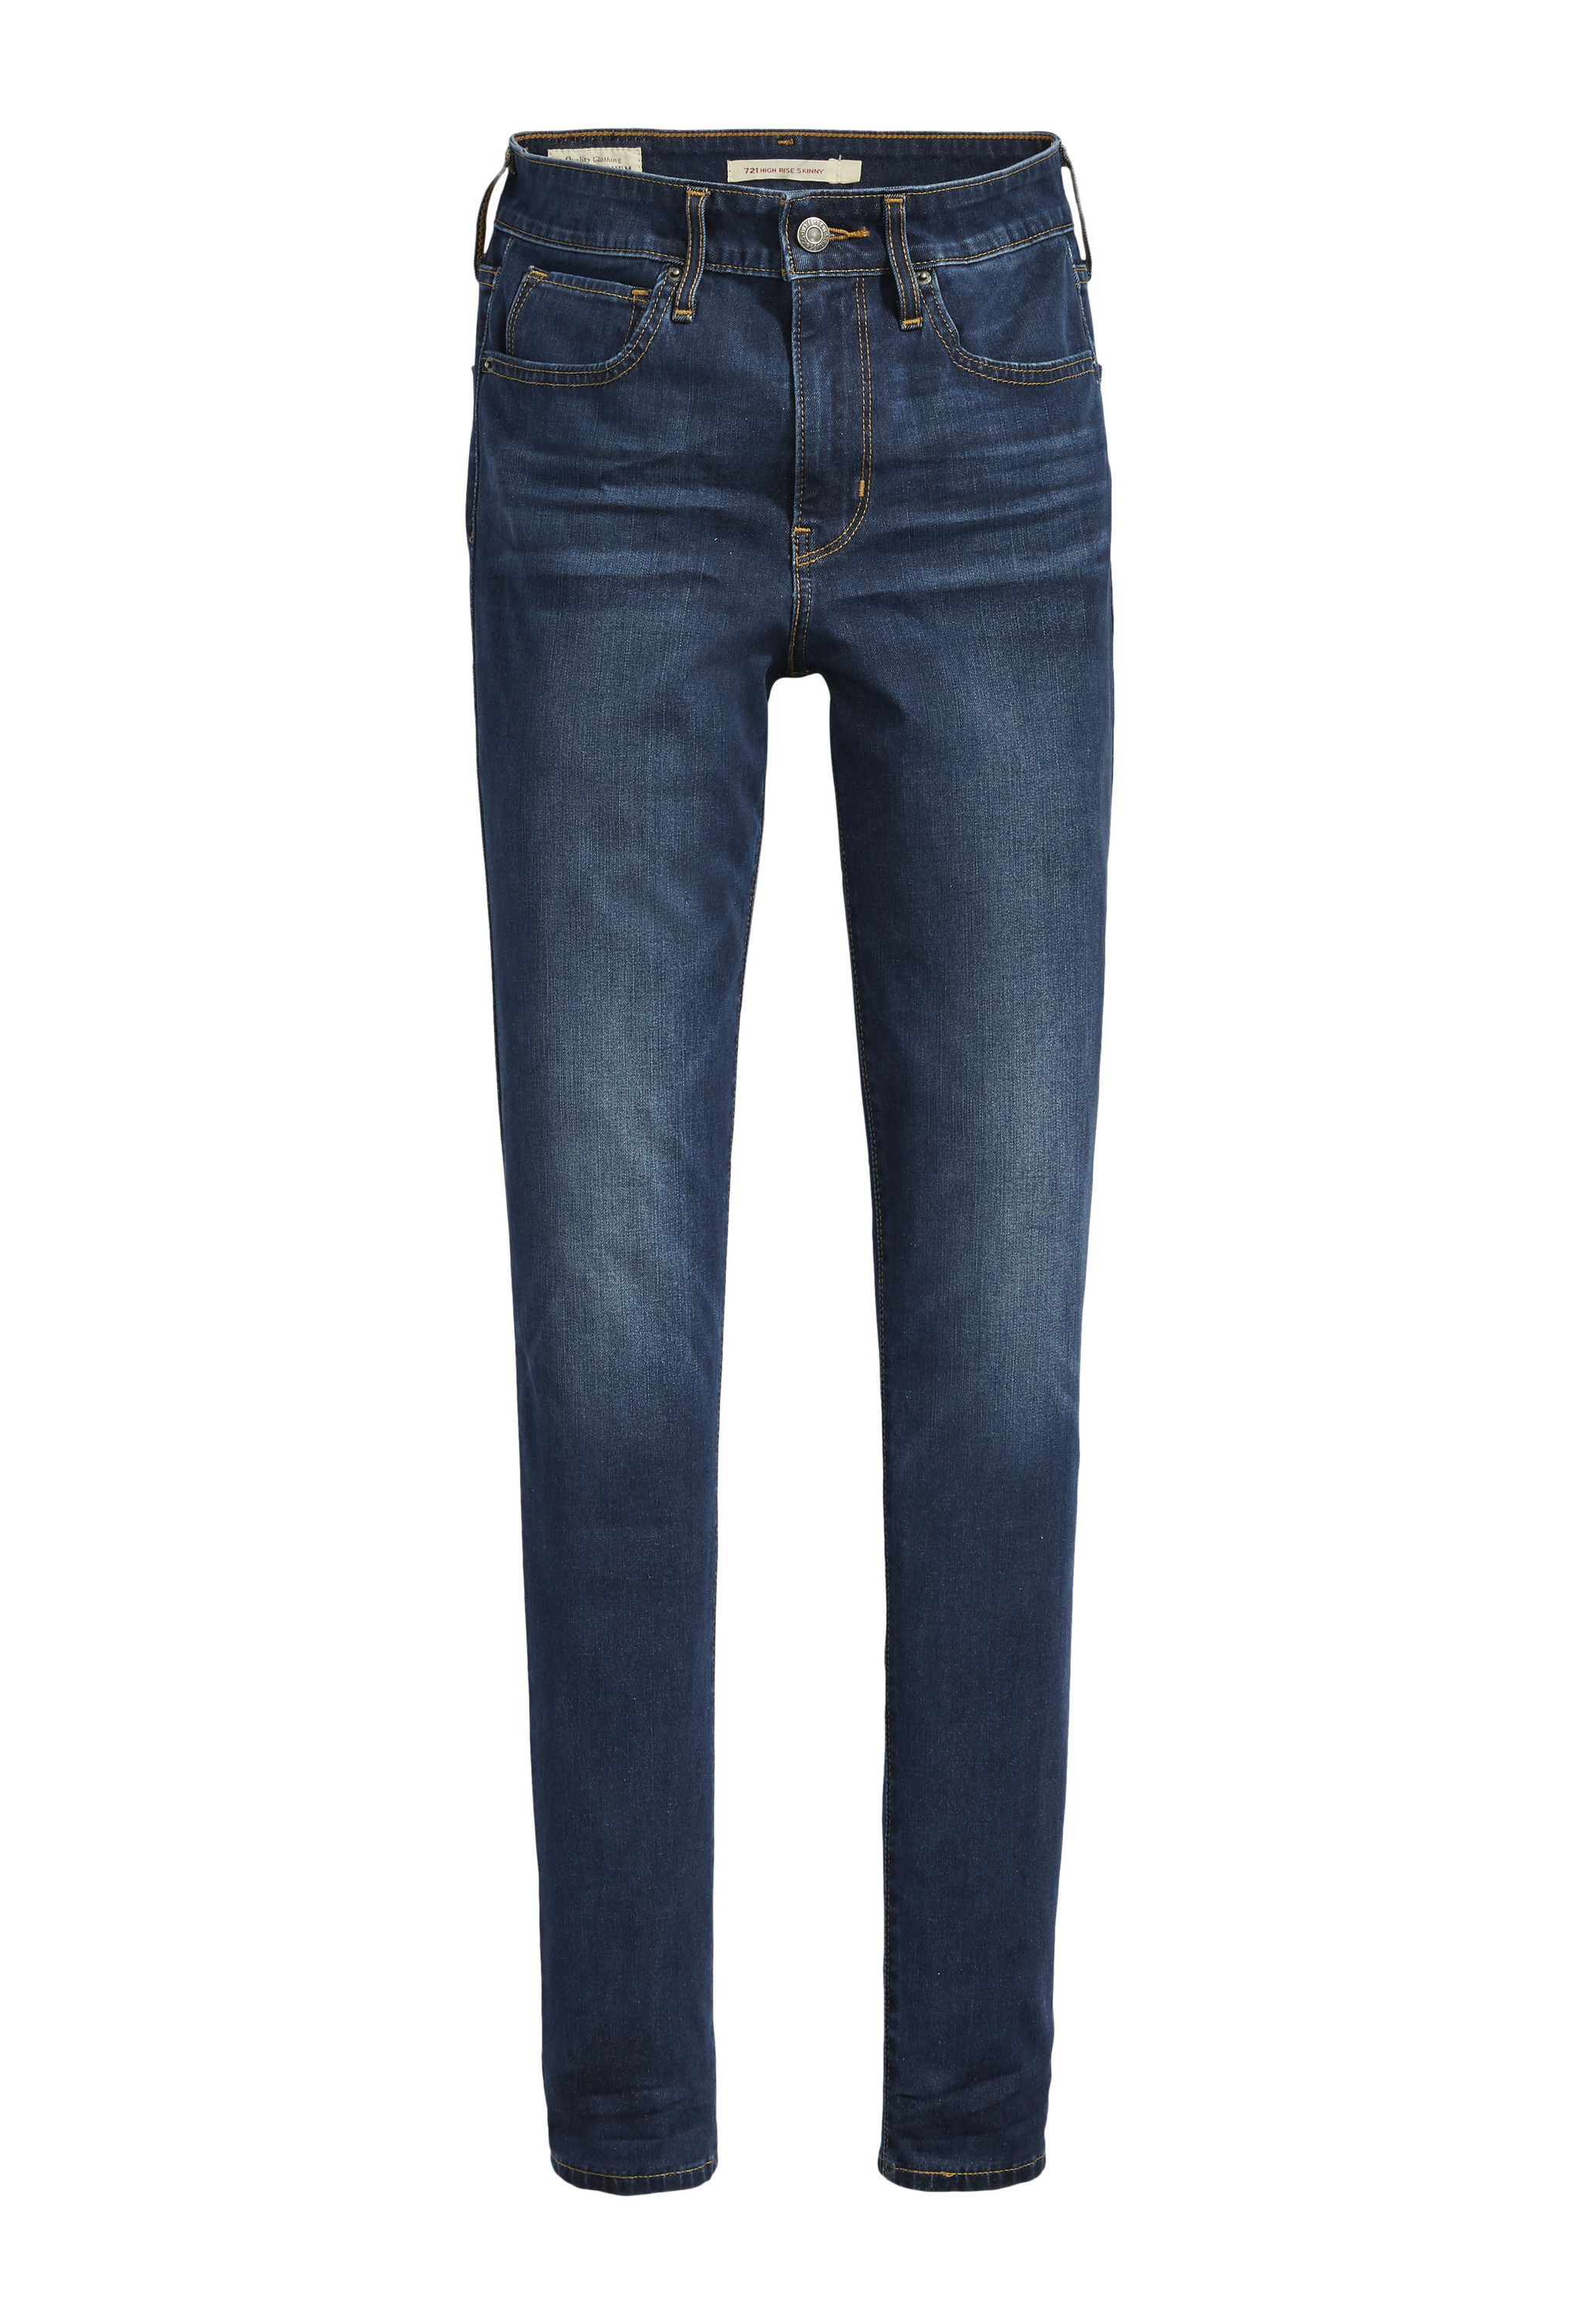 121- Levi's Hirise Skinny For Up